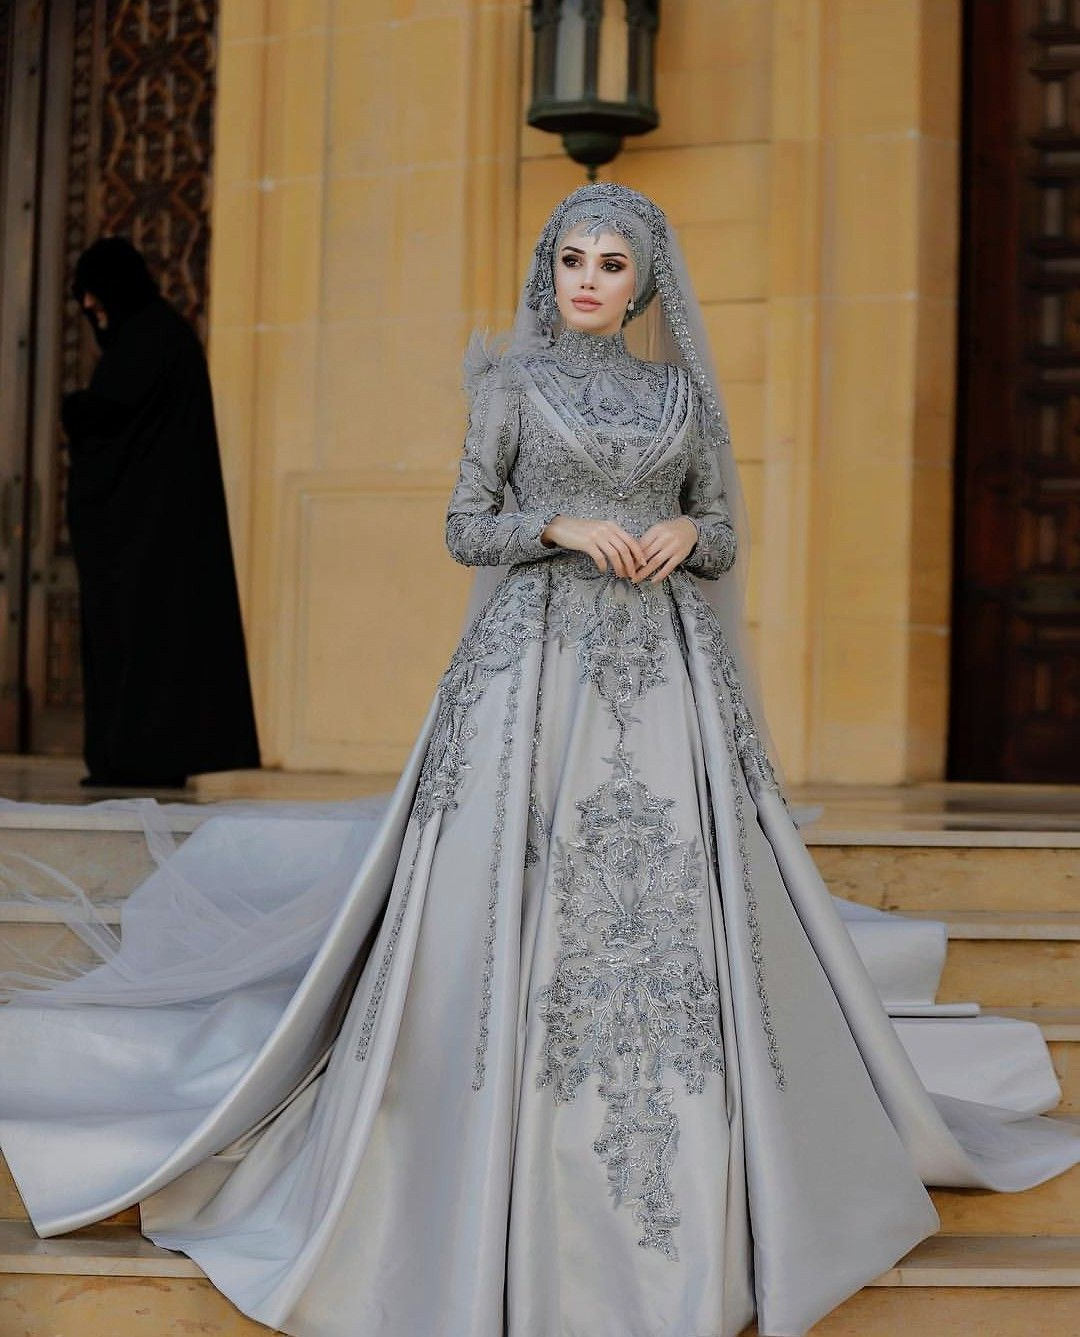 Model Hijab Bridesmaid Dresses H9d9 Pin by Nasko On Hijab Fashion In 2019